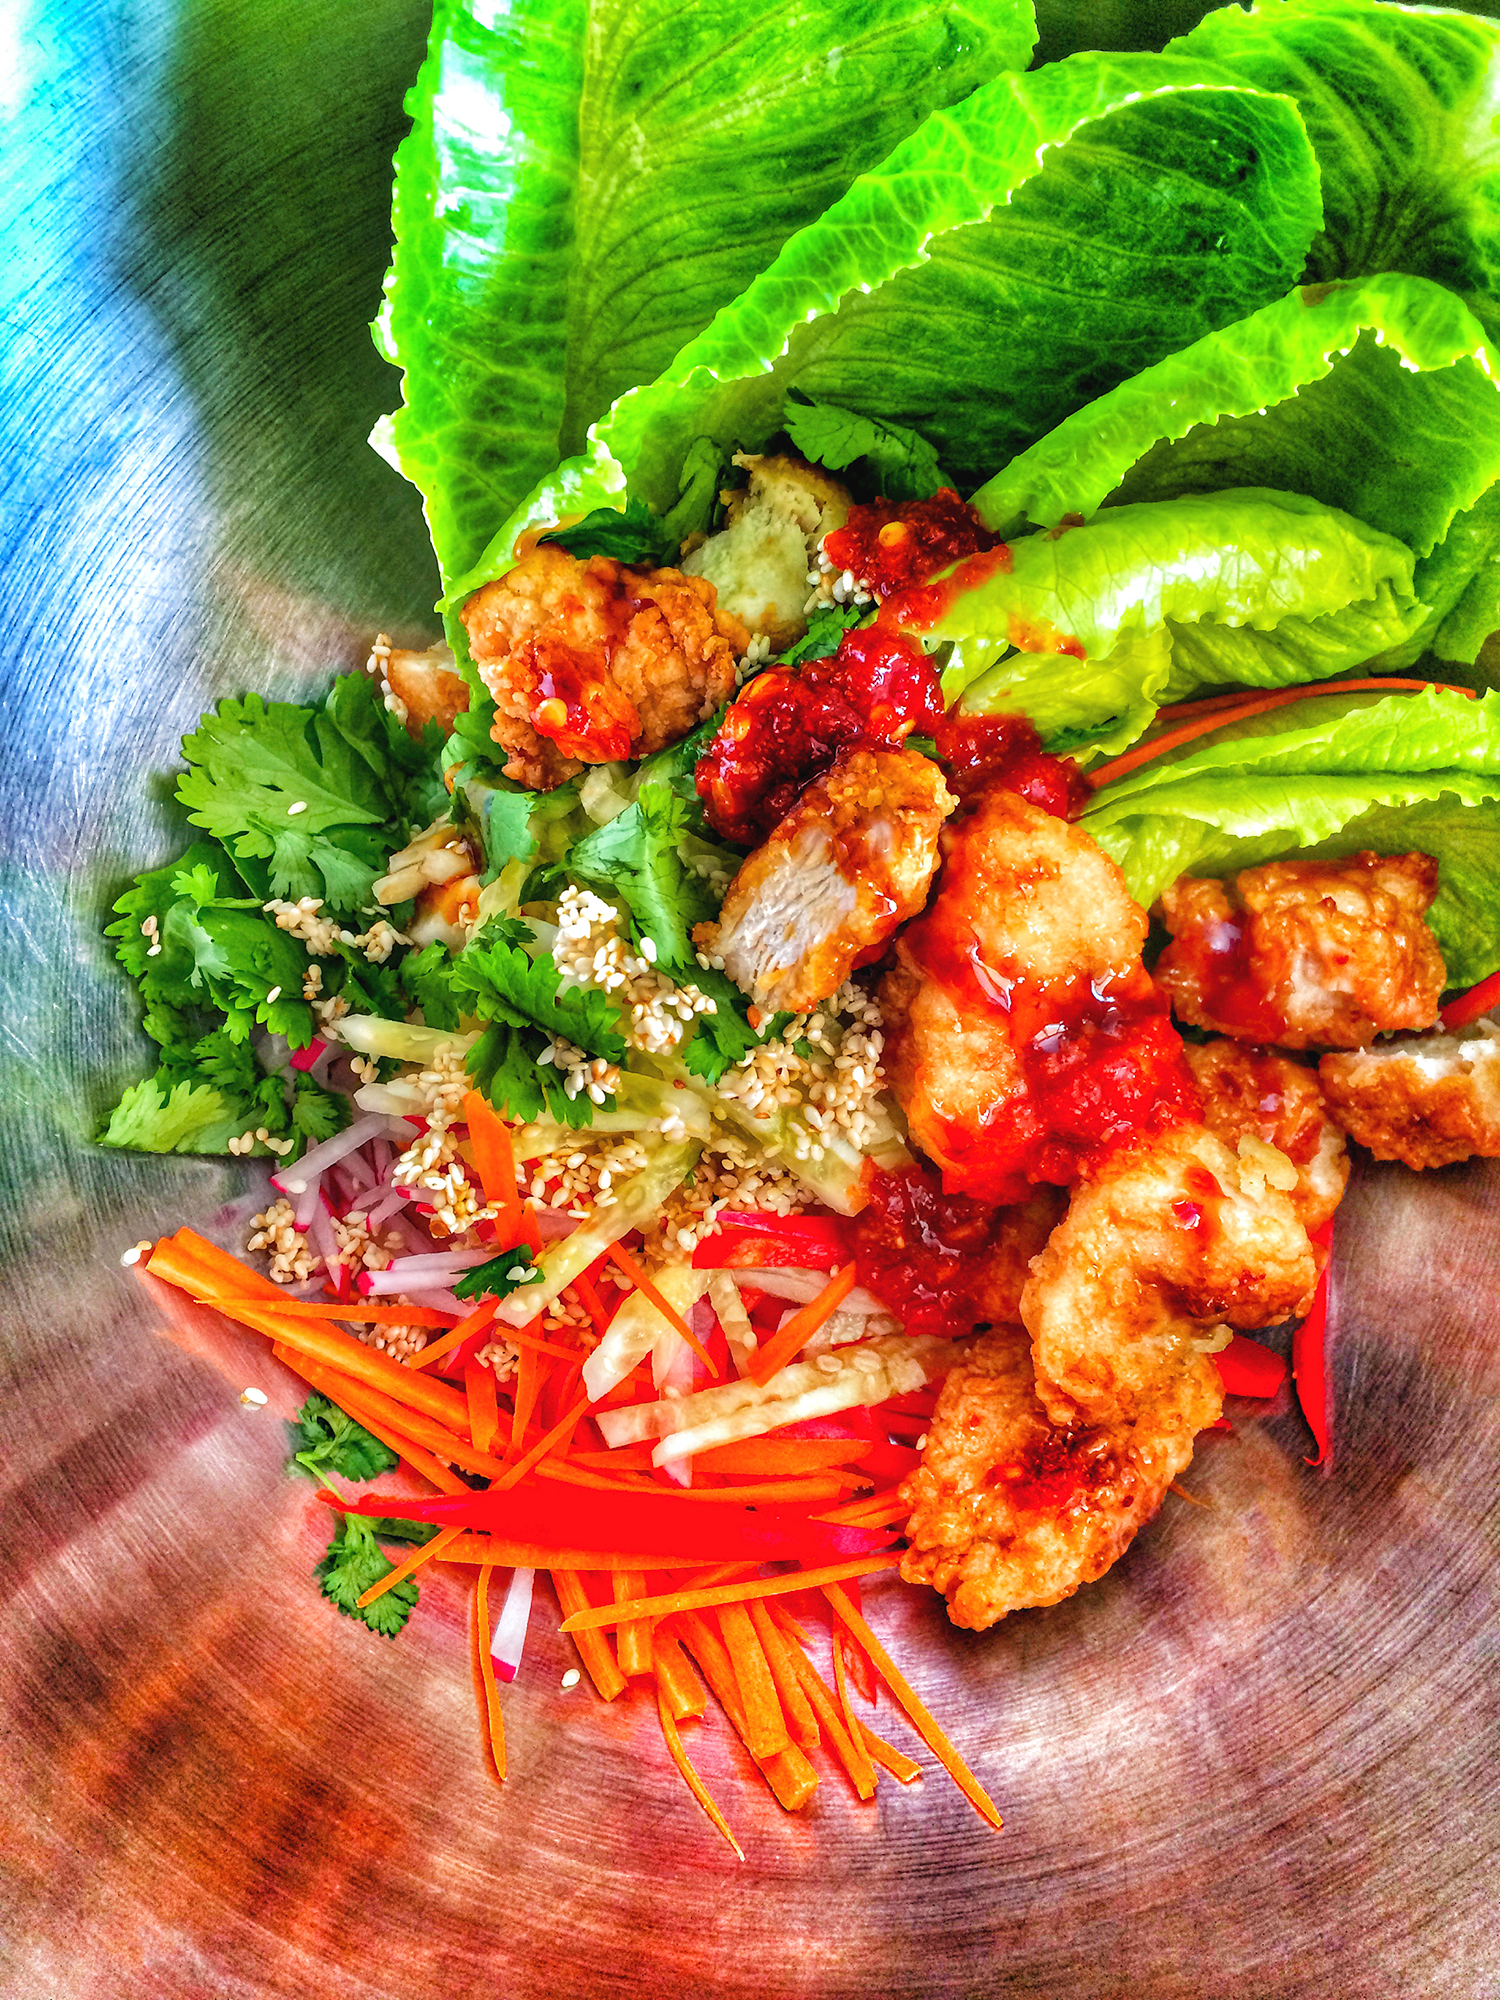 10_asian-chicken-salad_SnapSeed_original.jpg